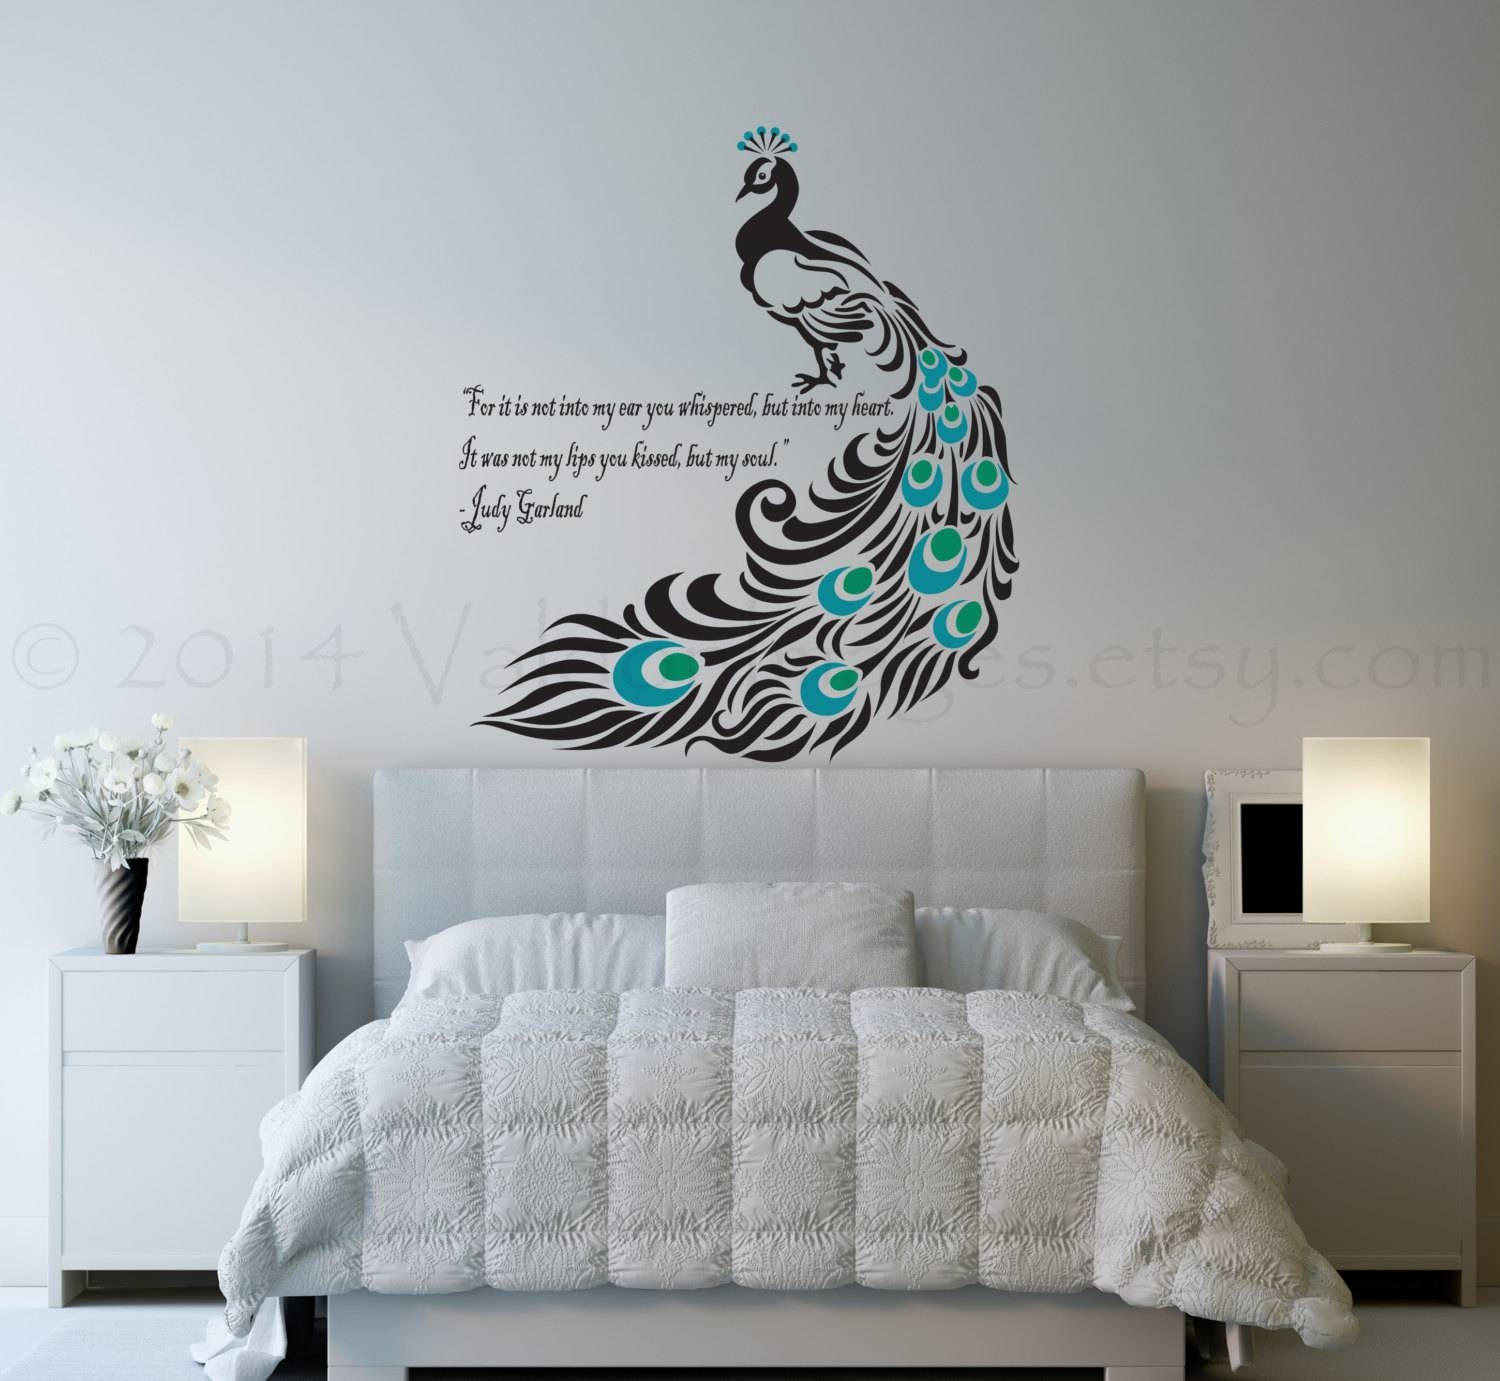 Emejing Wall Art Ideas For Bedroom Images – Decorating Design Throughout Most Recently Released Bed Wall Art (View 2 of 25)